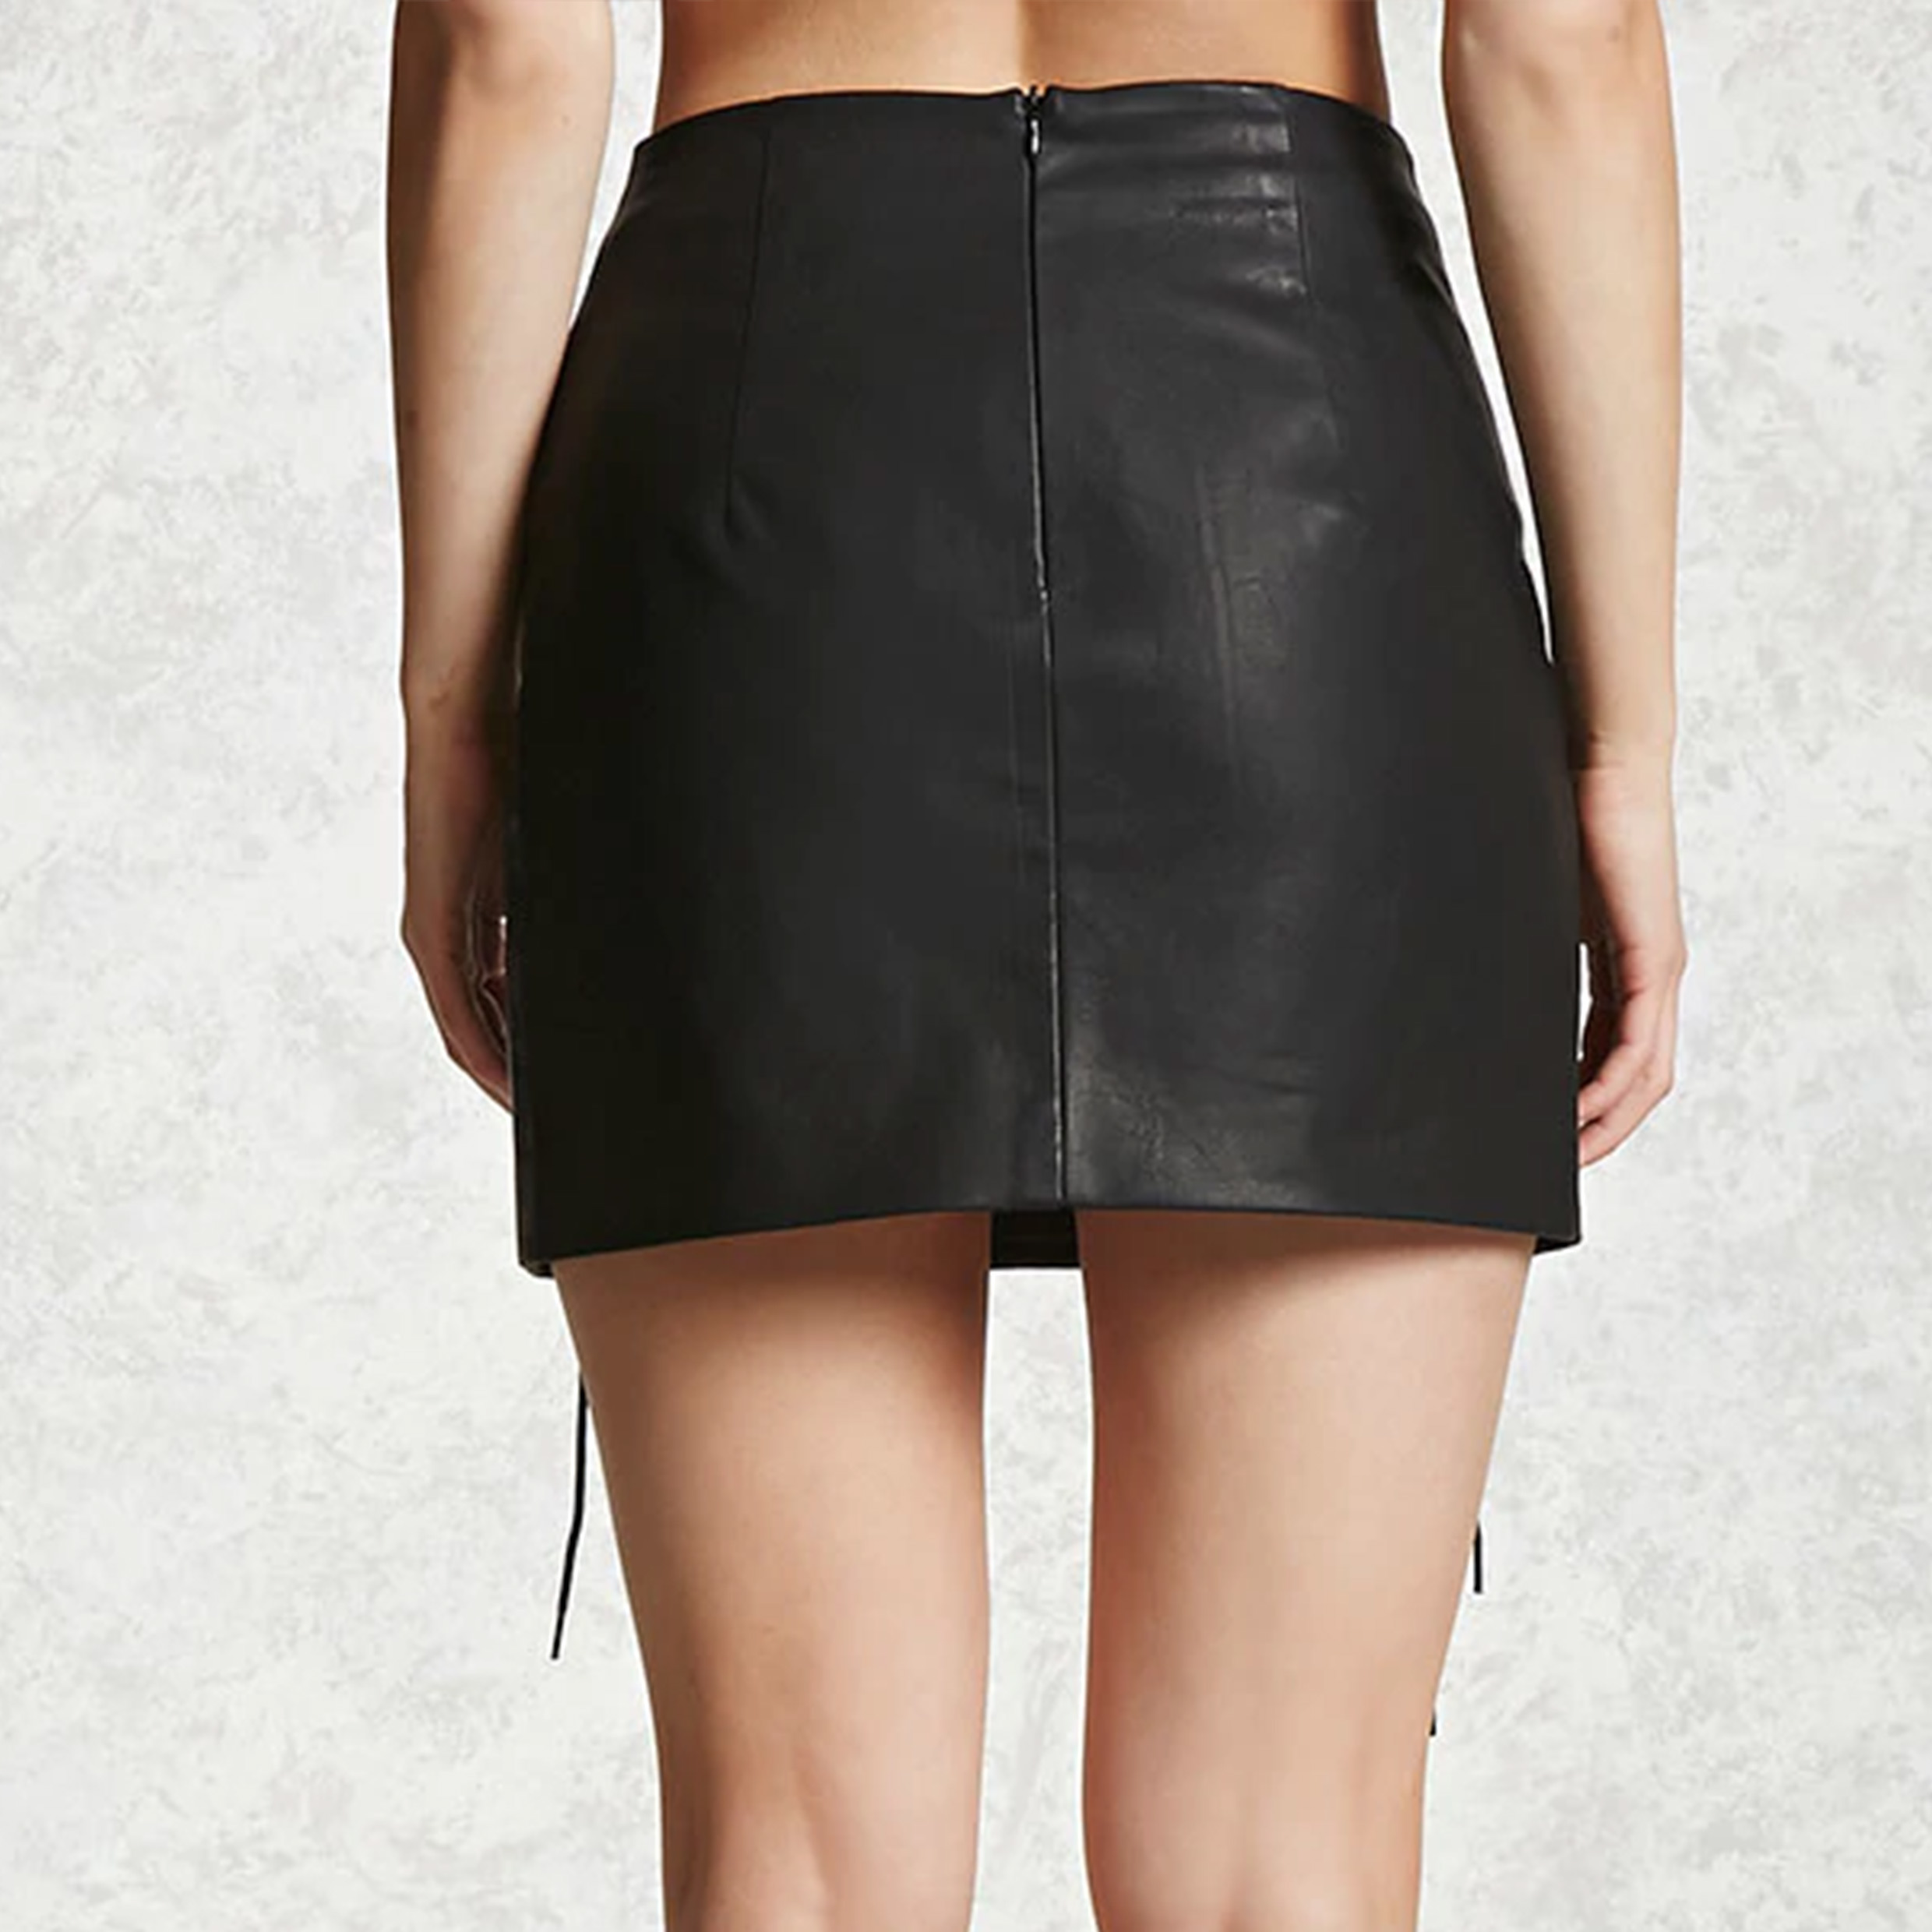 Fashion Women Sexy Imitation Leather Bandage Skirt Short Dress